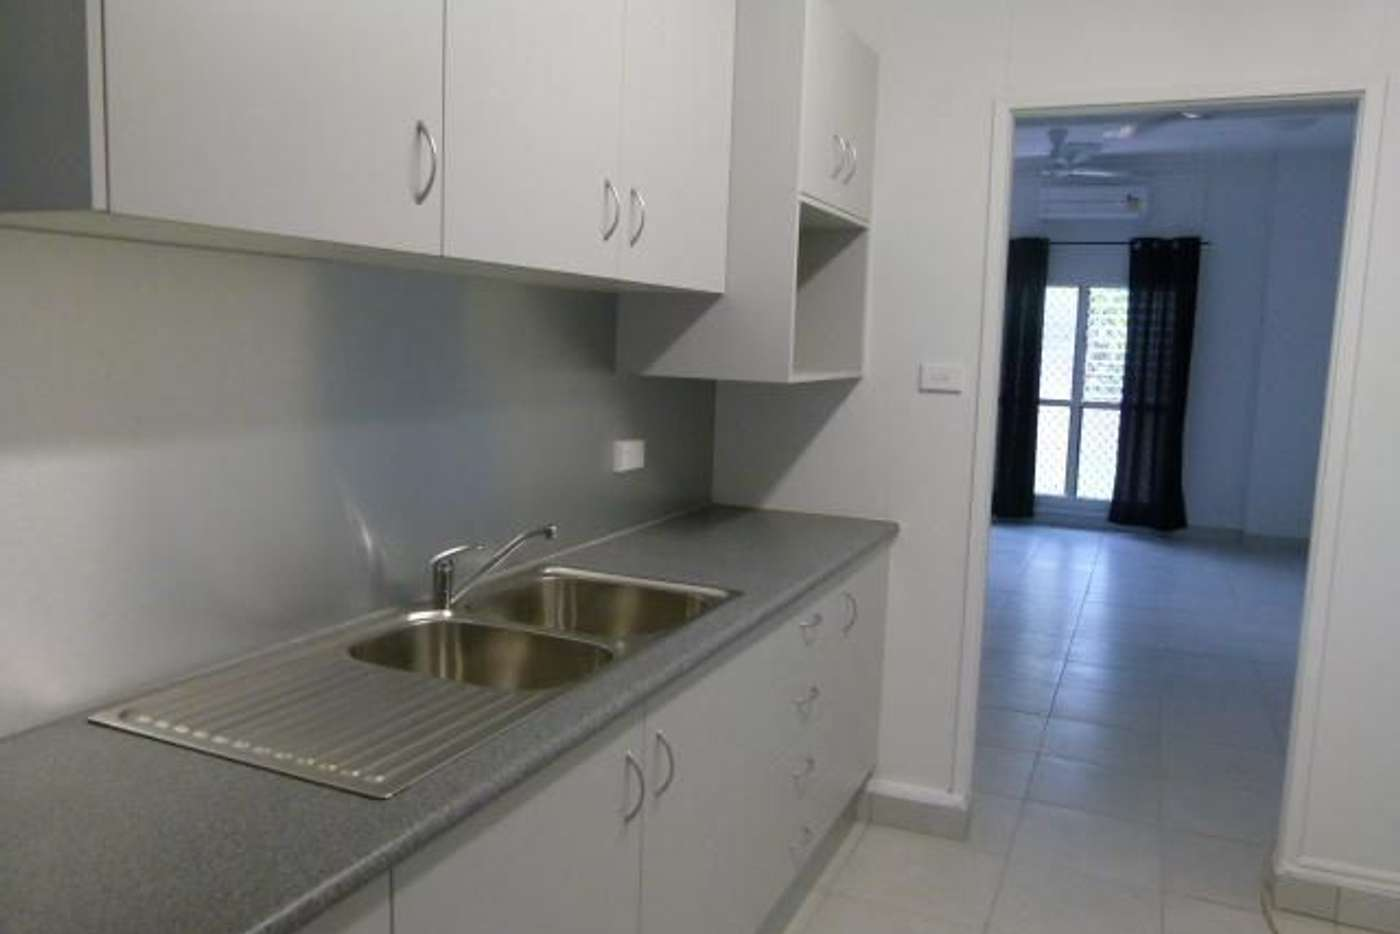 Main view of Homely unit listing, 2/3 Fulton Place, Millner NT 810